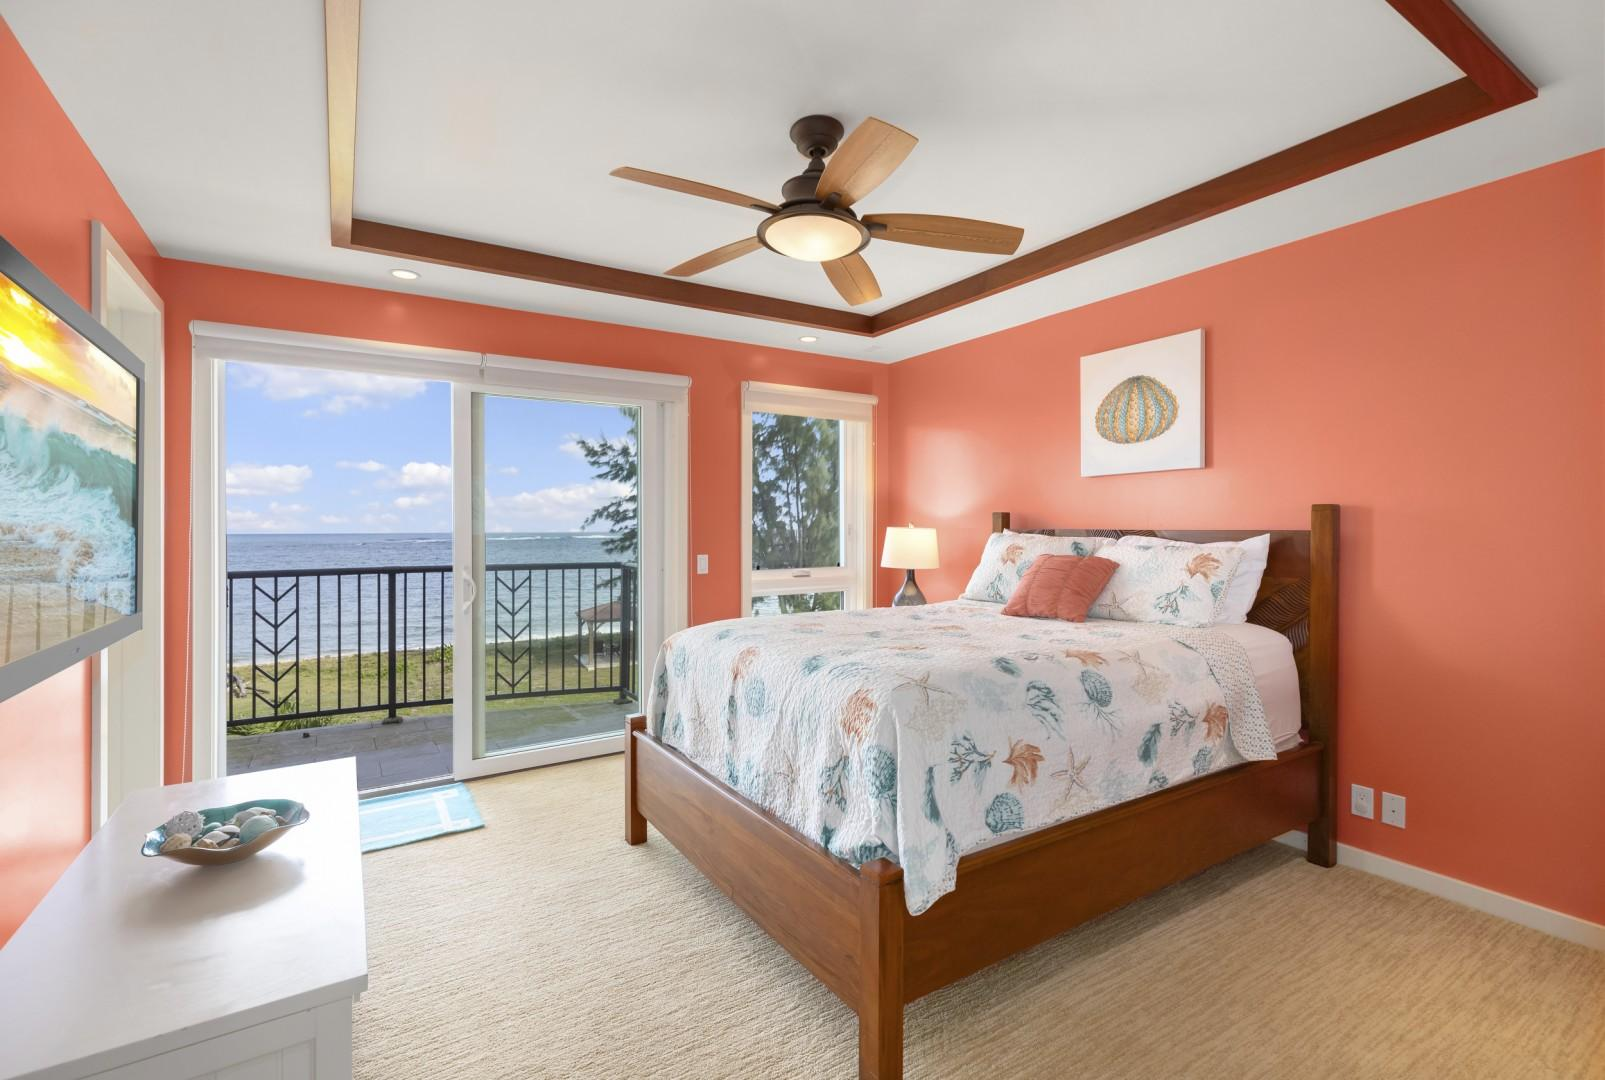 Junior master suite with pillow-top queen bed and balcony with view of pool and ocean.